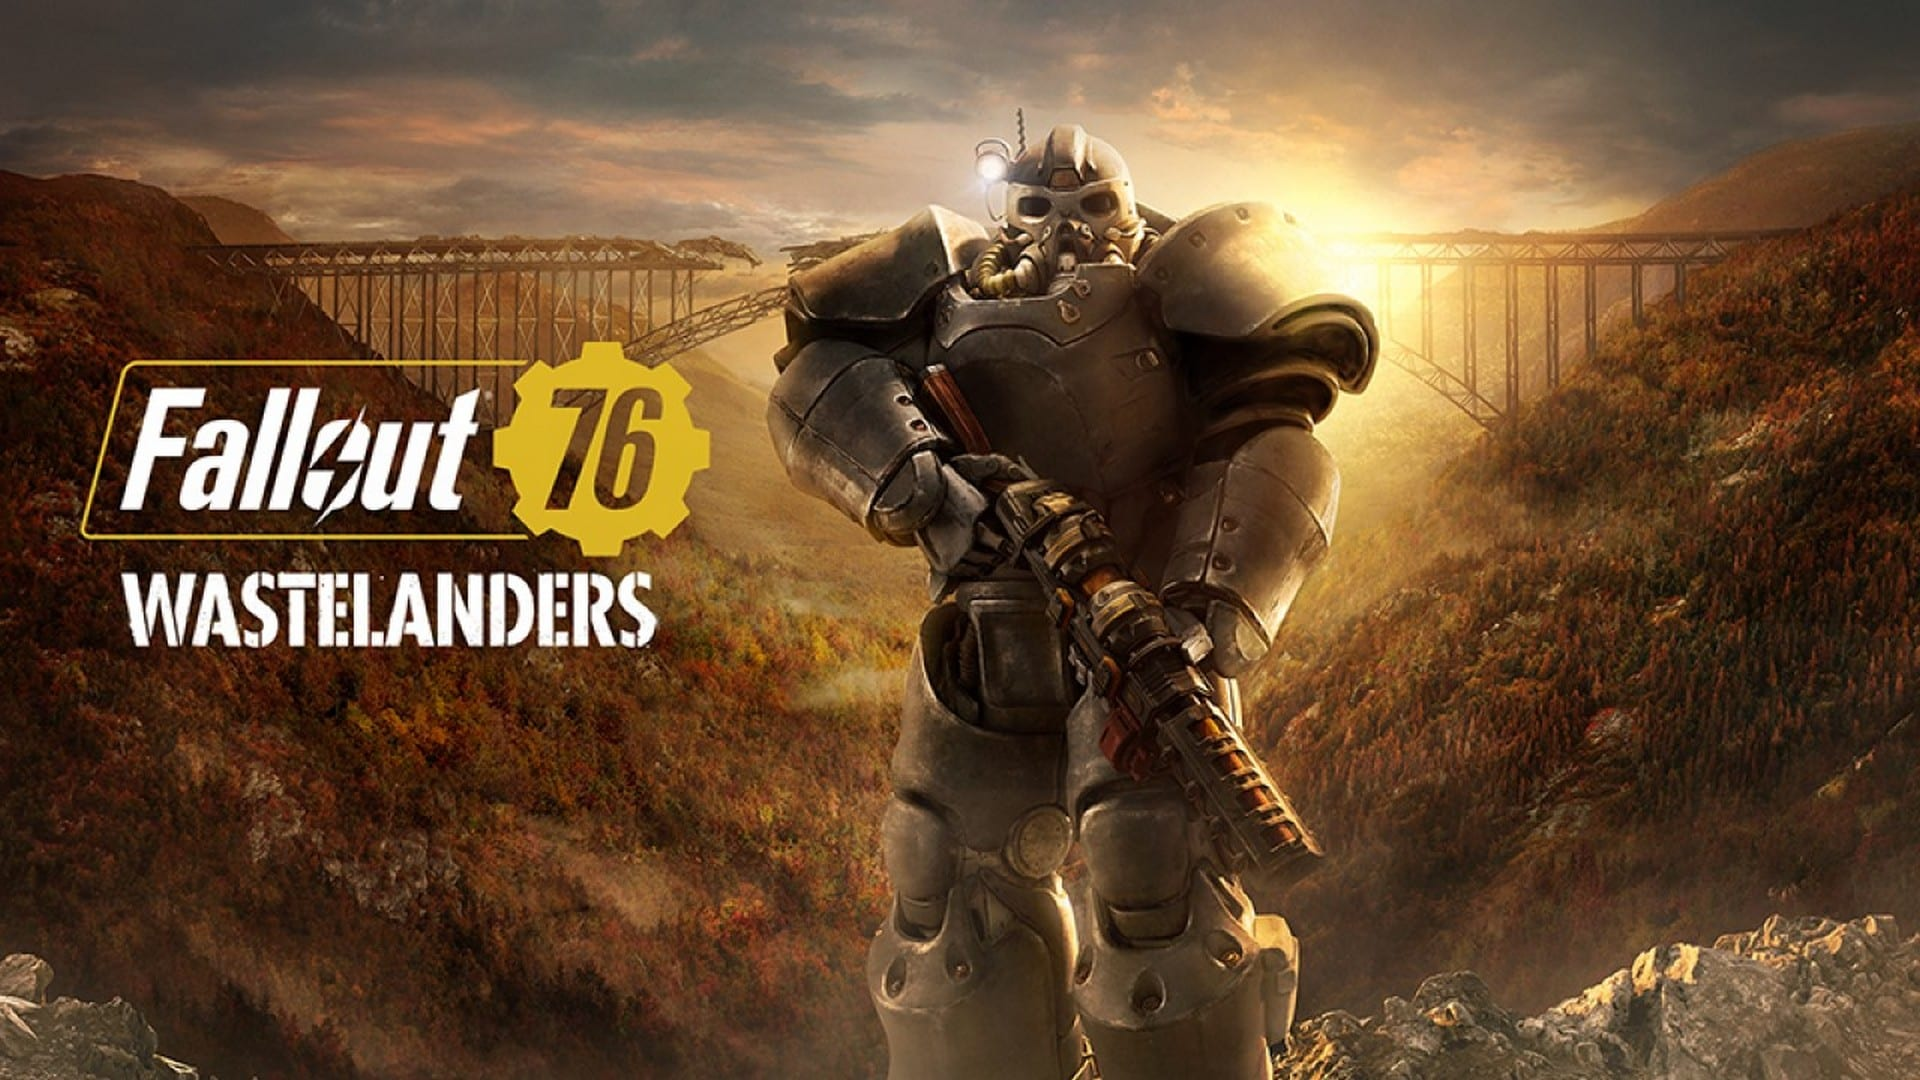 Fallout 76 - Free Wastelanders Update Announced for April 7. 2020   MKAU Gaming